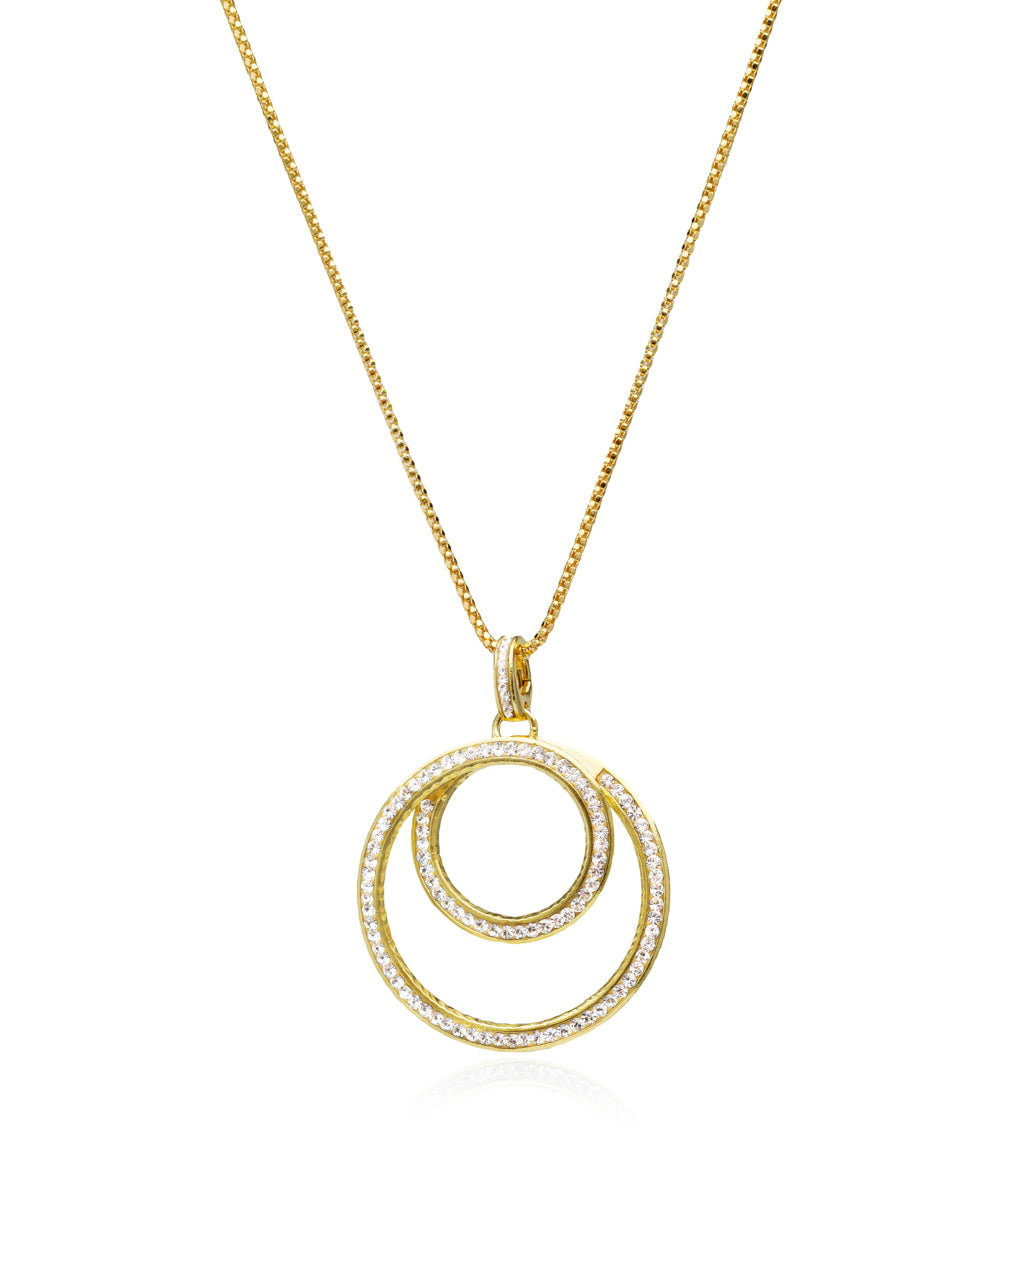 Eternity Swirl Charm Pendant Necklace